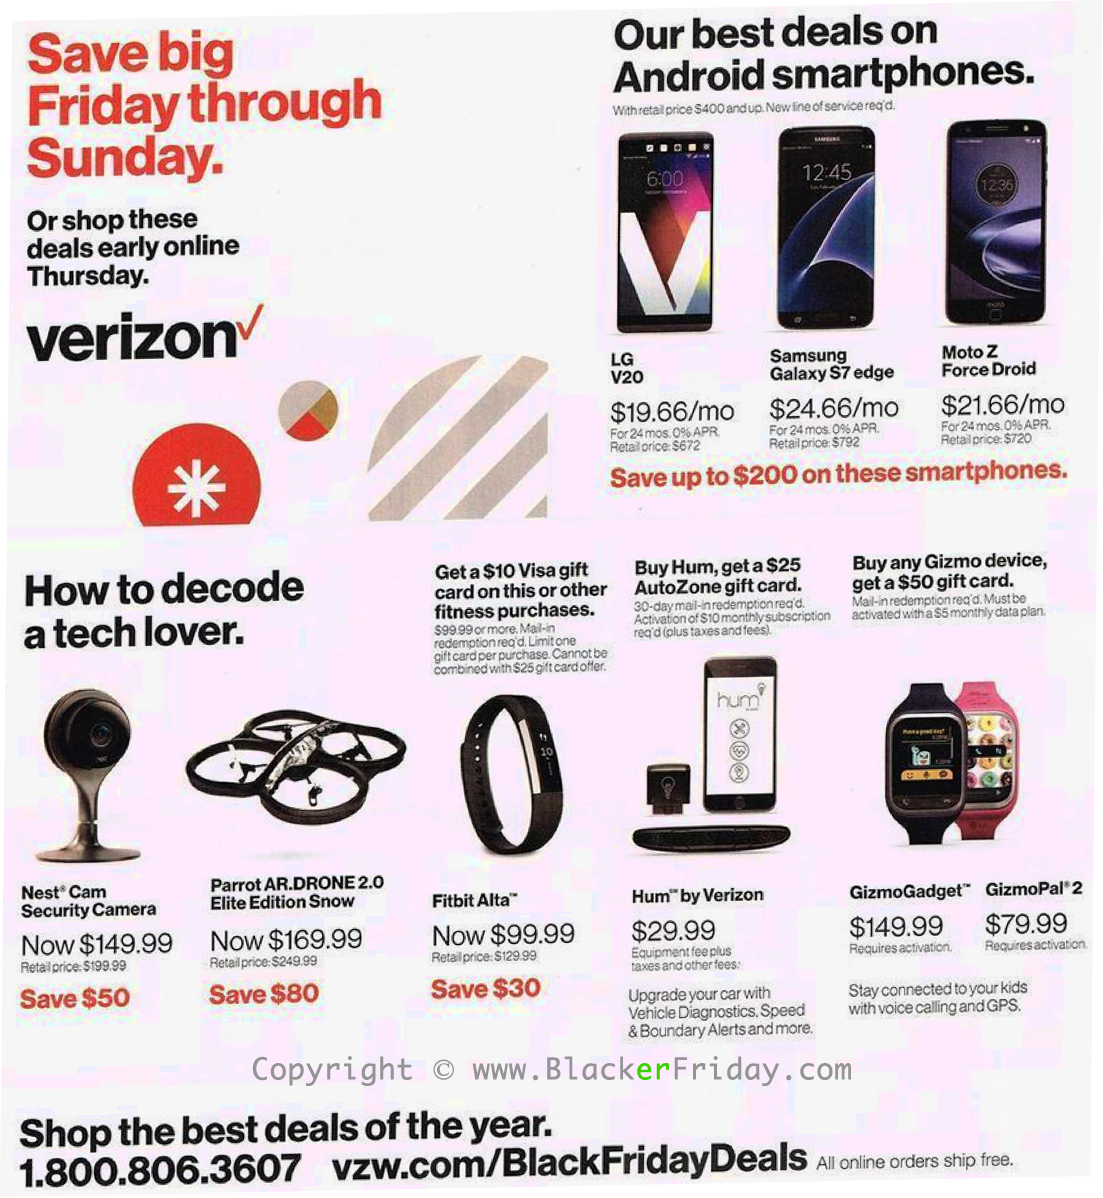 Verizon Smartphones and Tablets Deals